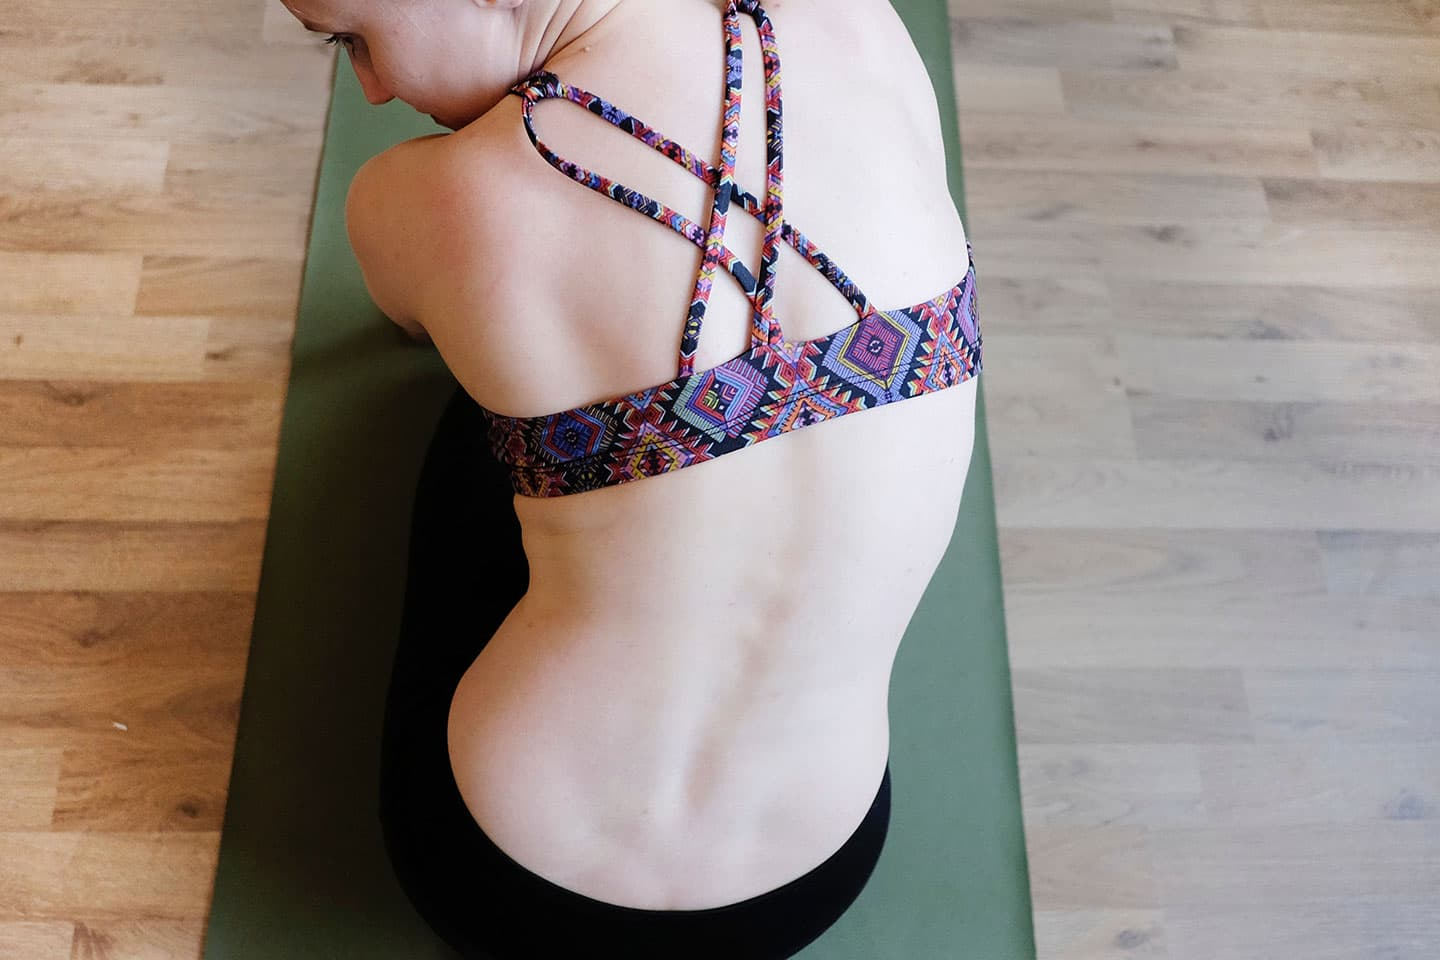 someone sitting down showing a jagged spine